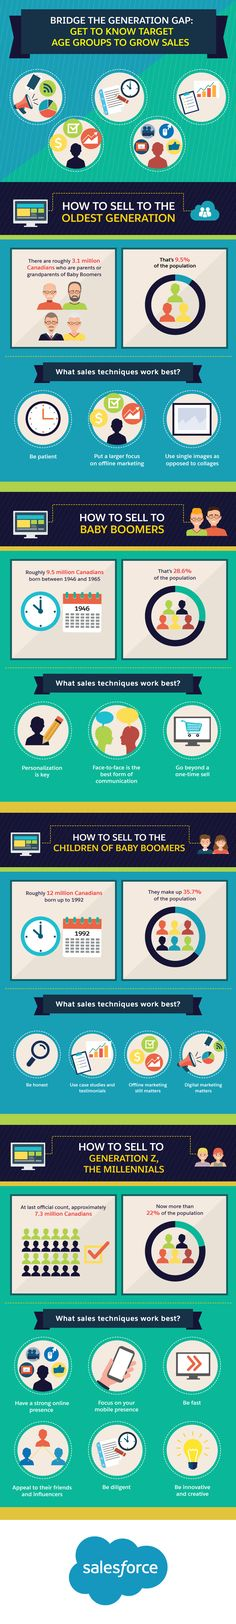 Bridge the Generation Gap: Get to Know Target Age Groups to Grow Sales #infographic #Sales #Marketing